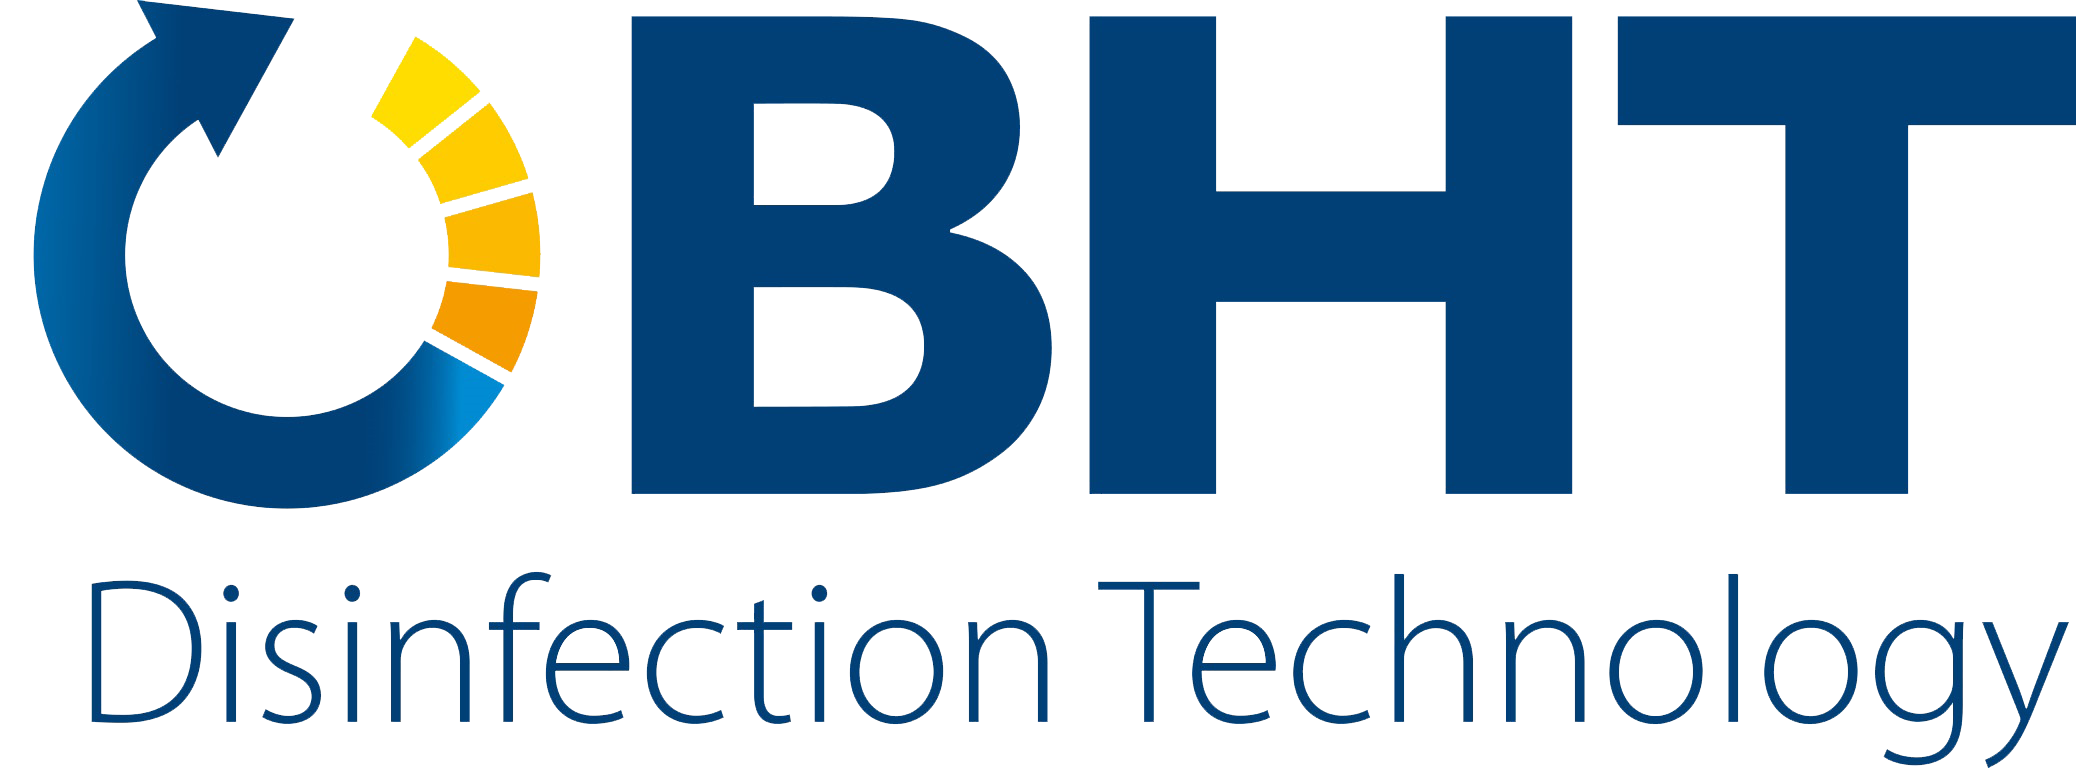 BHT Disinfection Technology